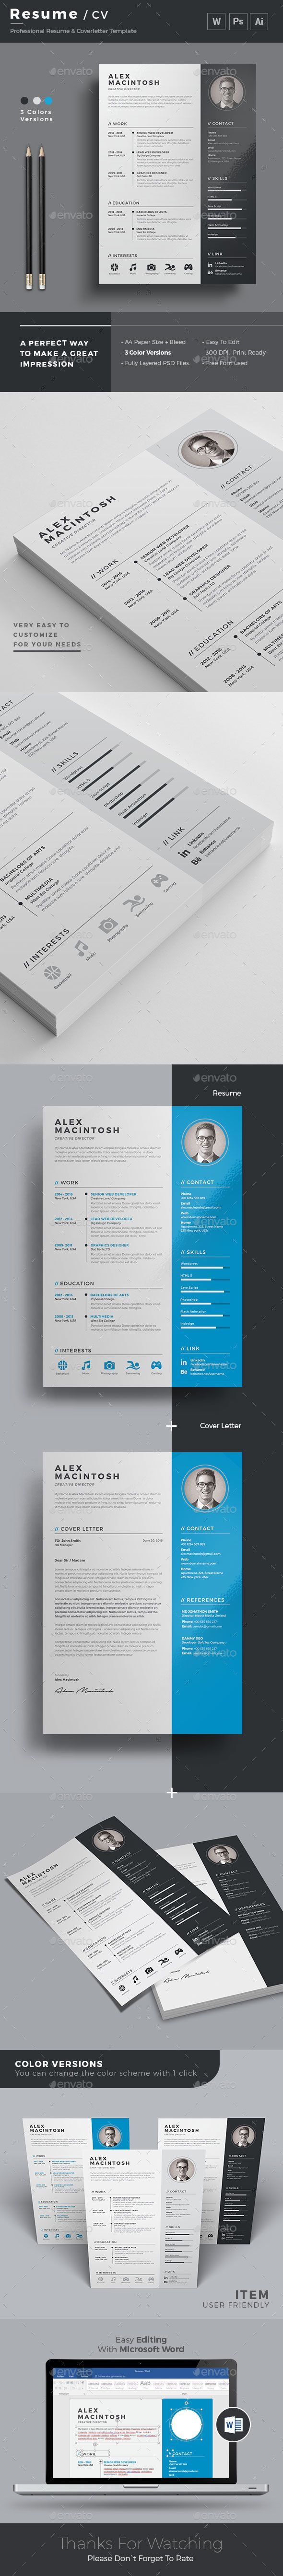 Resume Cv Templates Free Download%0A production supervisor resume